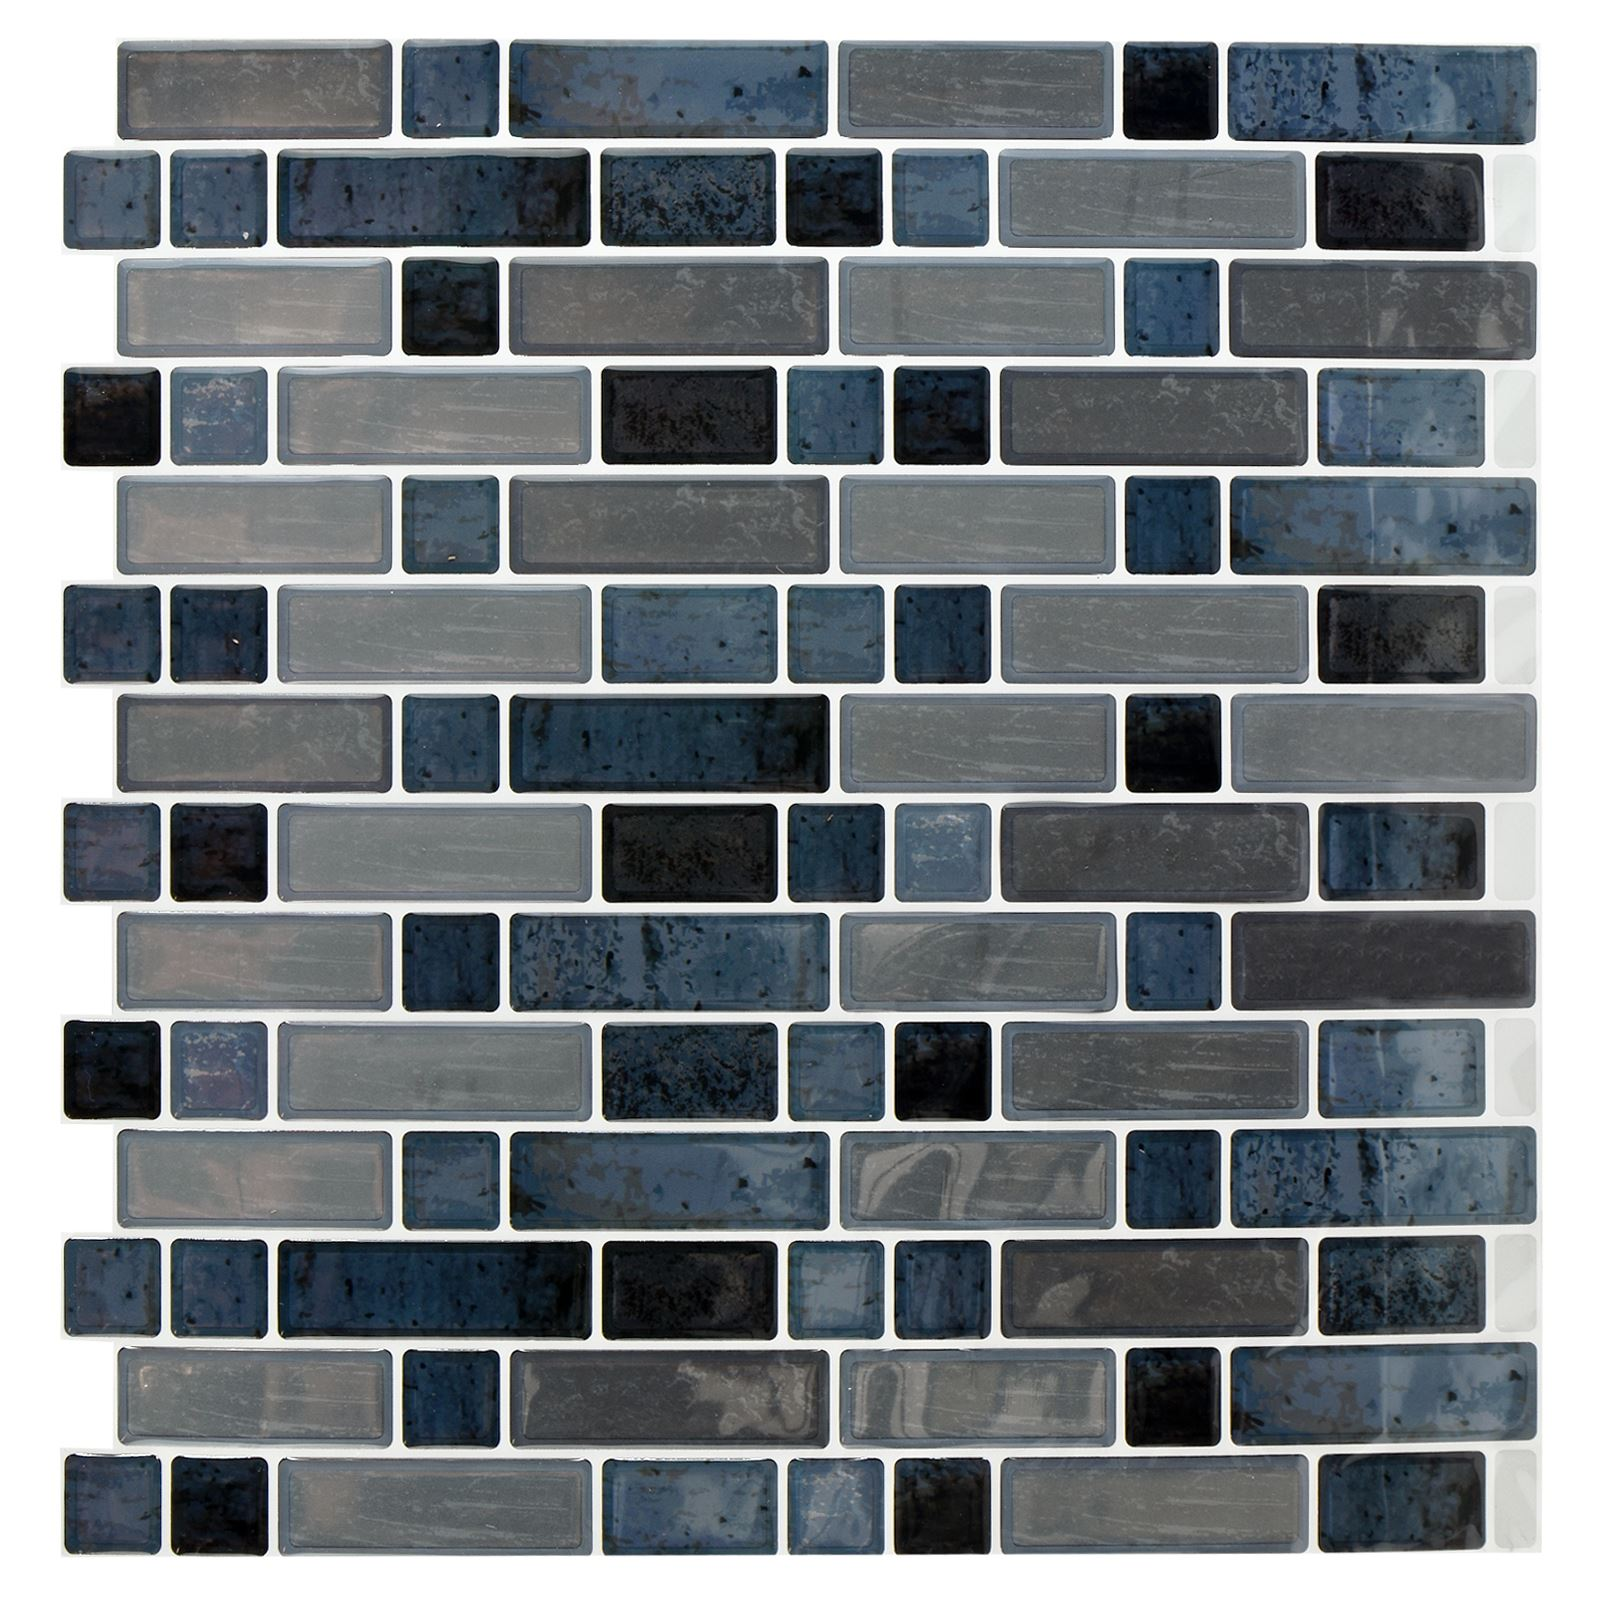 Self adhesive mosaic tile stickers bathroom kitchen for Bathroom tile stickers